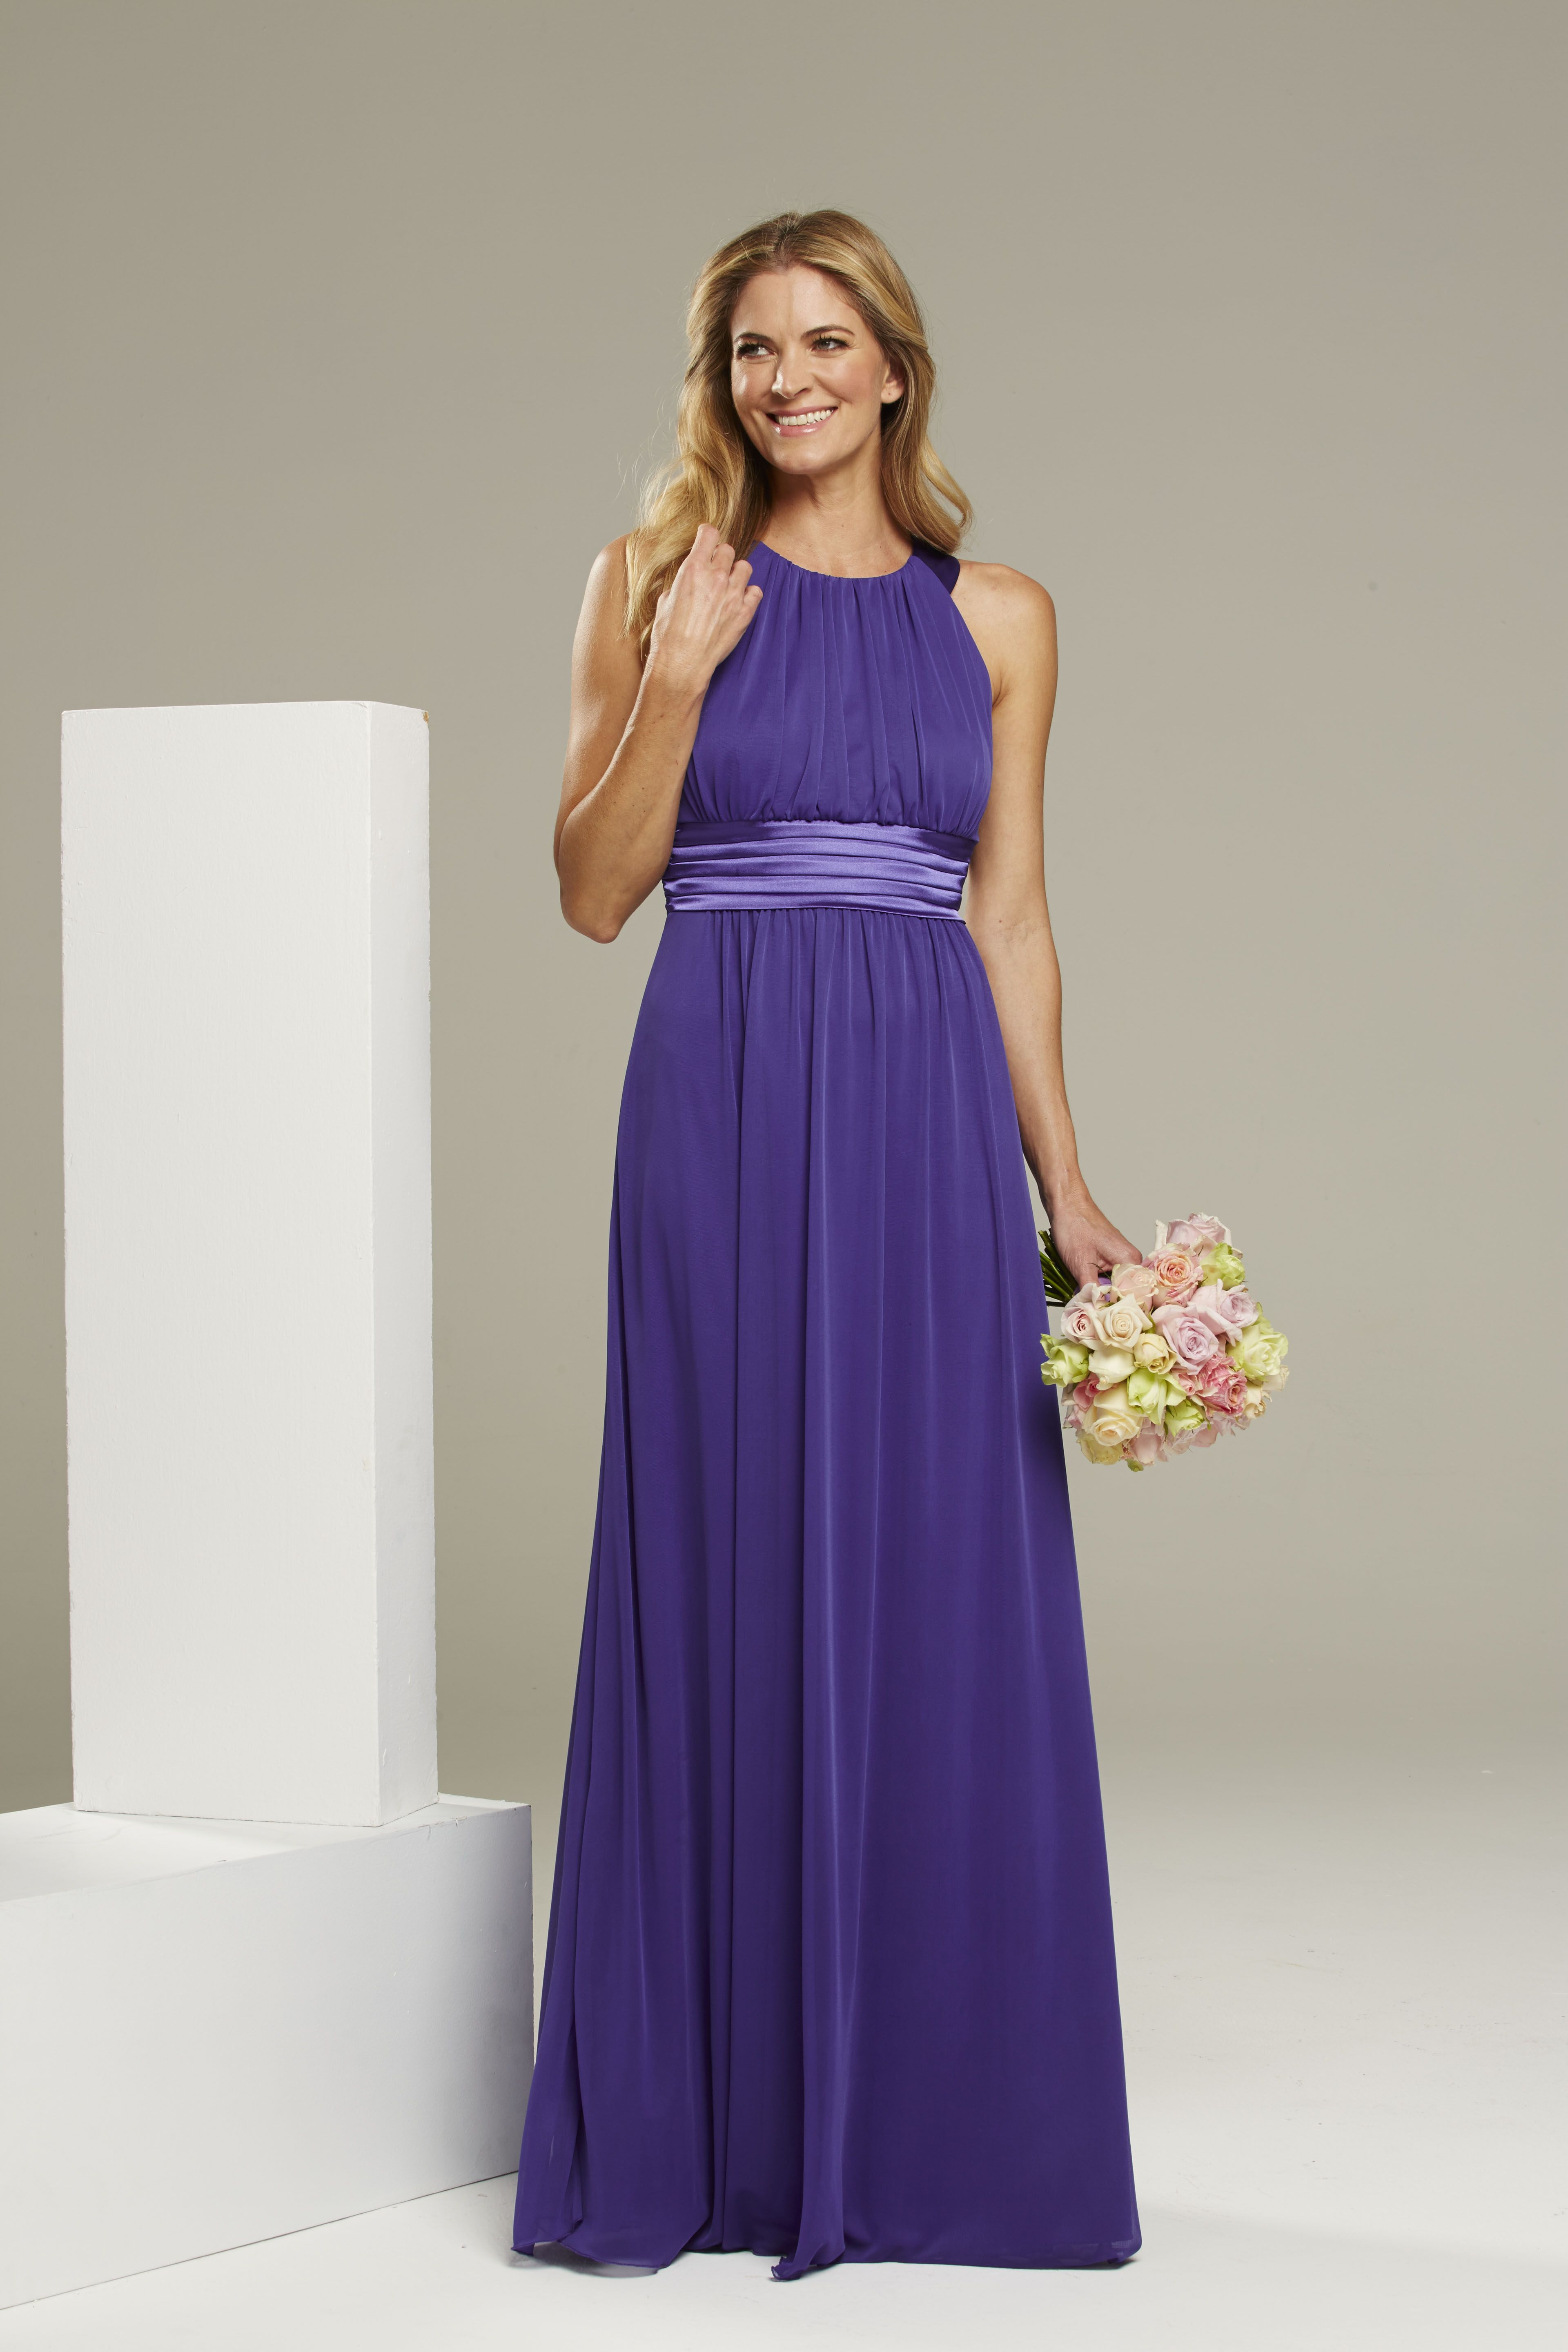 Mr k bridesmaid dress style kb4611 mr k ongoing bridesmaids mr k bridesmaid dress style kb4611 ombrellifo Images